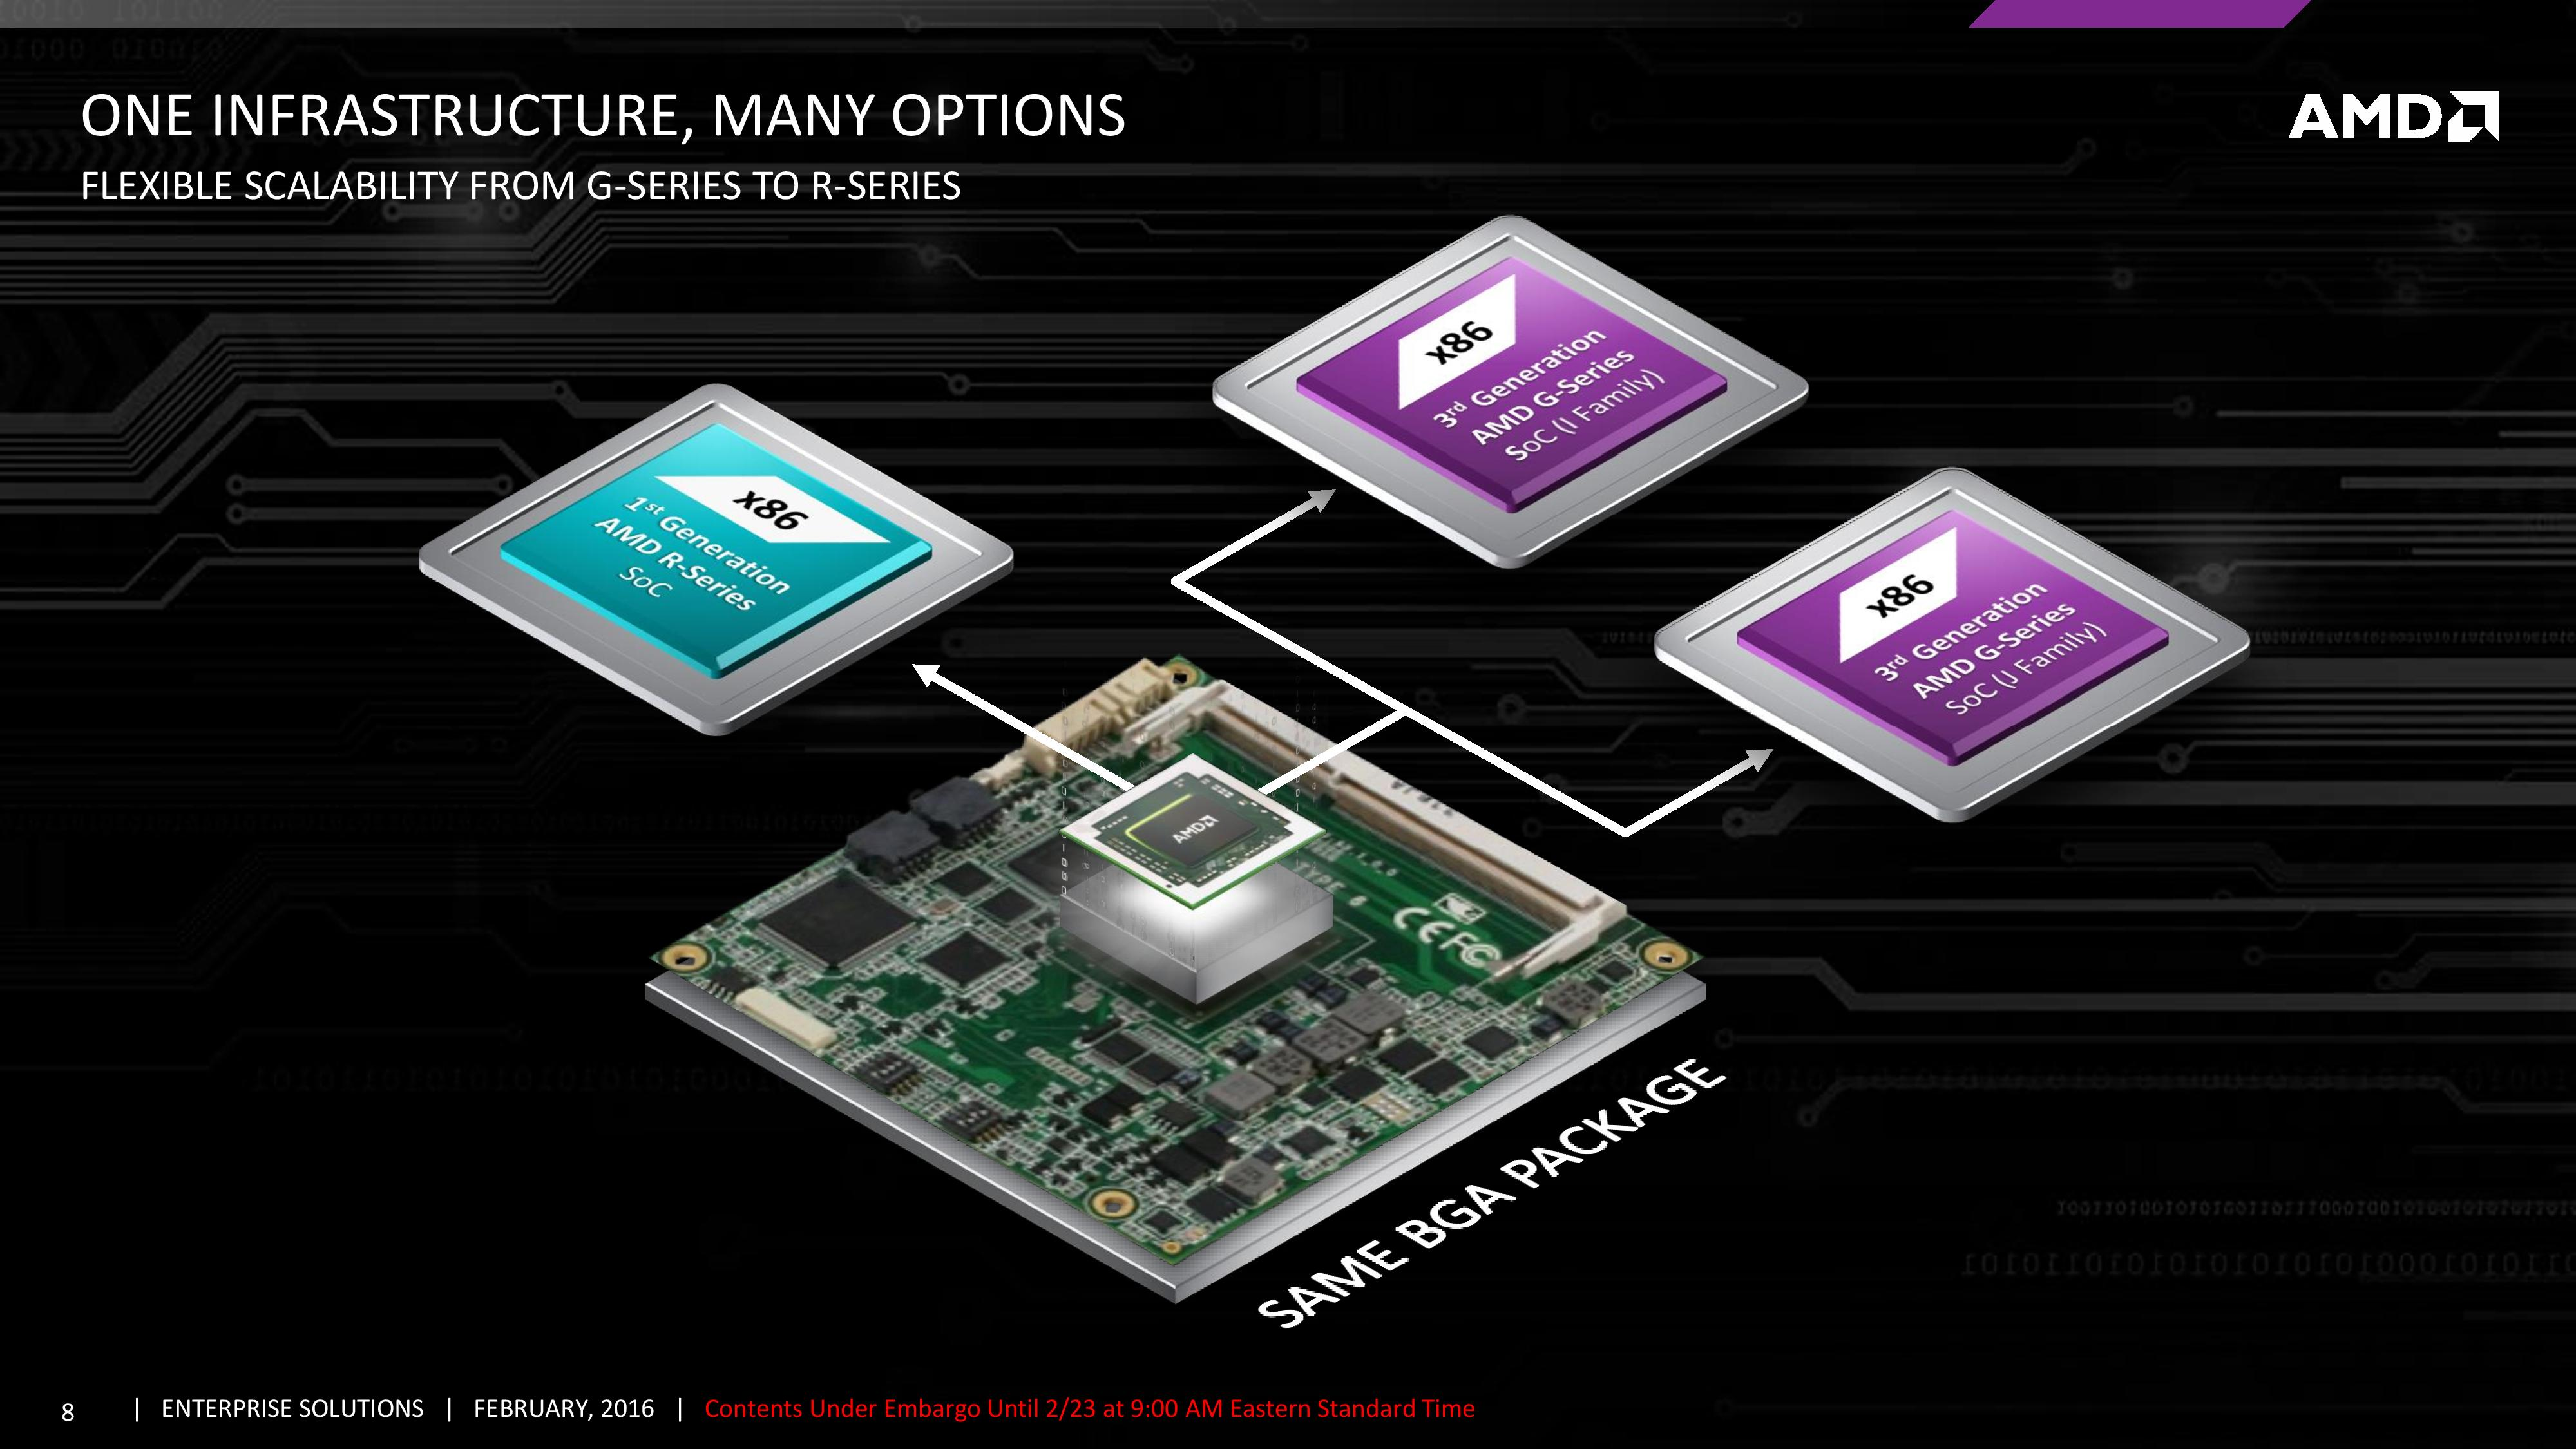 AMD Expands G-Series Embedded SoCs with Excavator